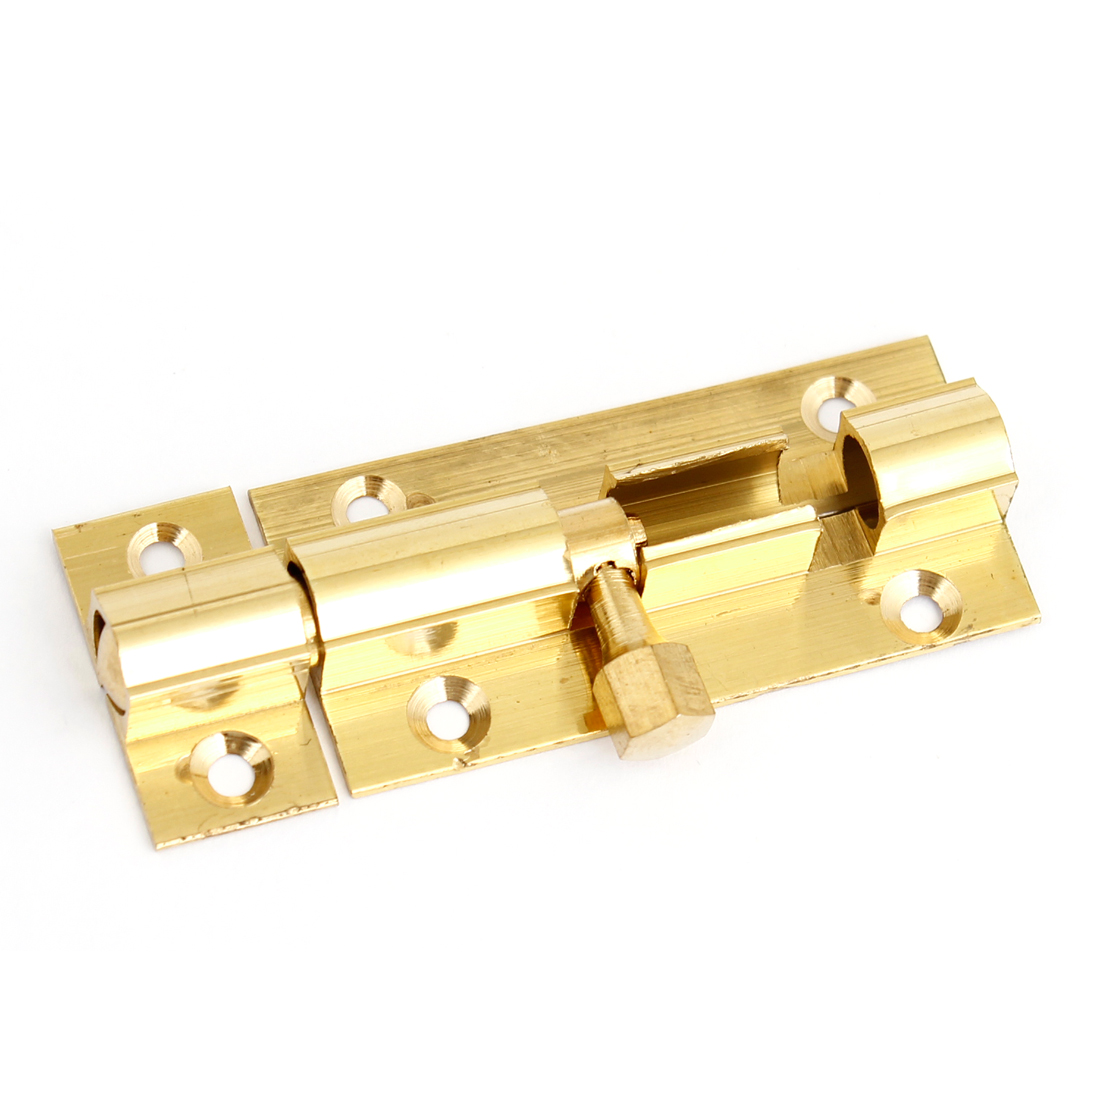 "Door 2.5"" Length Gold Tone Stainless Steel Barrel Bolt Latch Set"